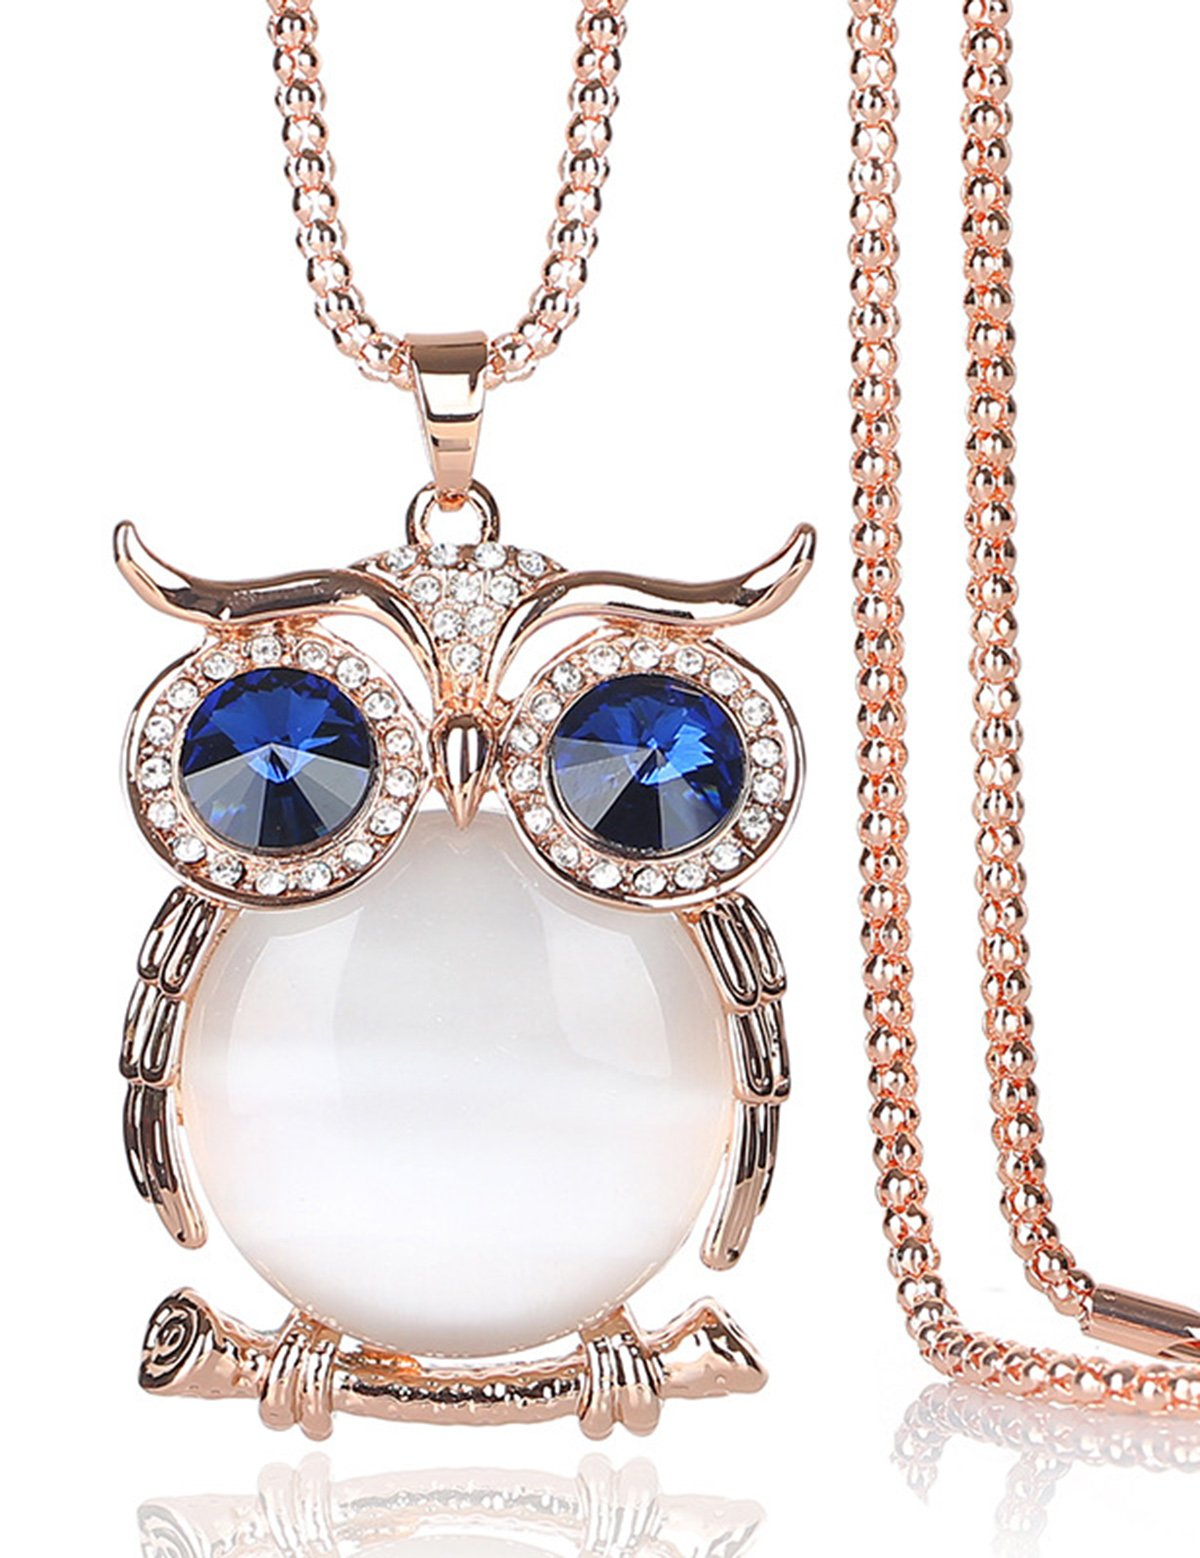 Owl Long Chain Pendant Necklaces Sweater Necklaces Big Large Created Opal Pendant with 30'' Long Necklace Mother's Day Gifts Birthday Gifts Anniversary Gifts for Girlfriend Wife Daughter Mom Women Son